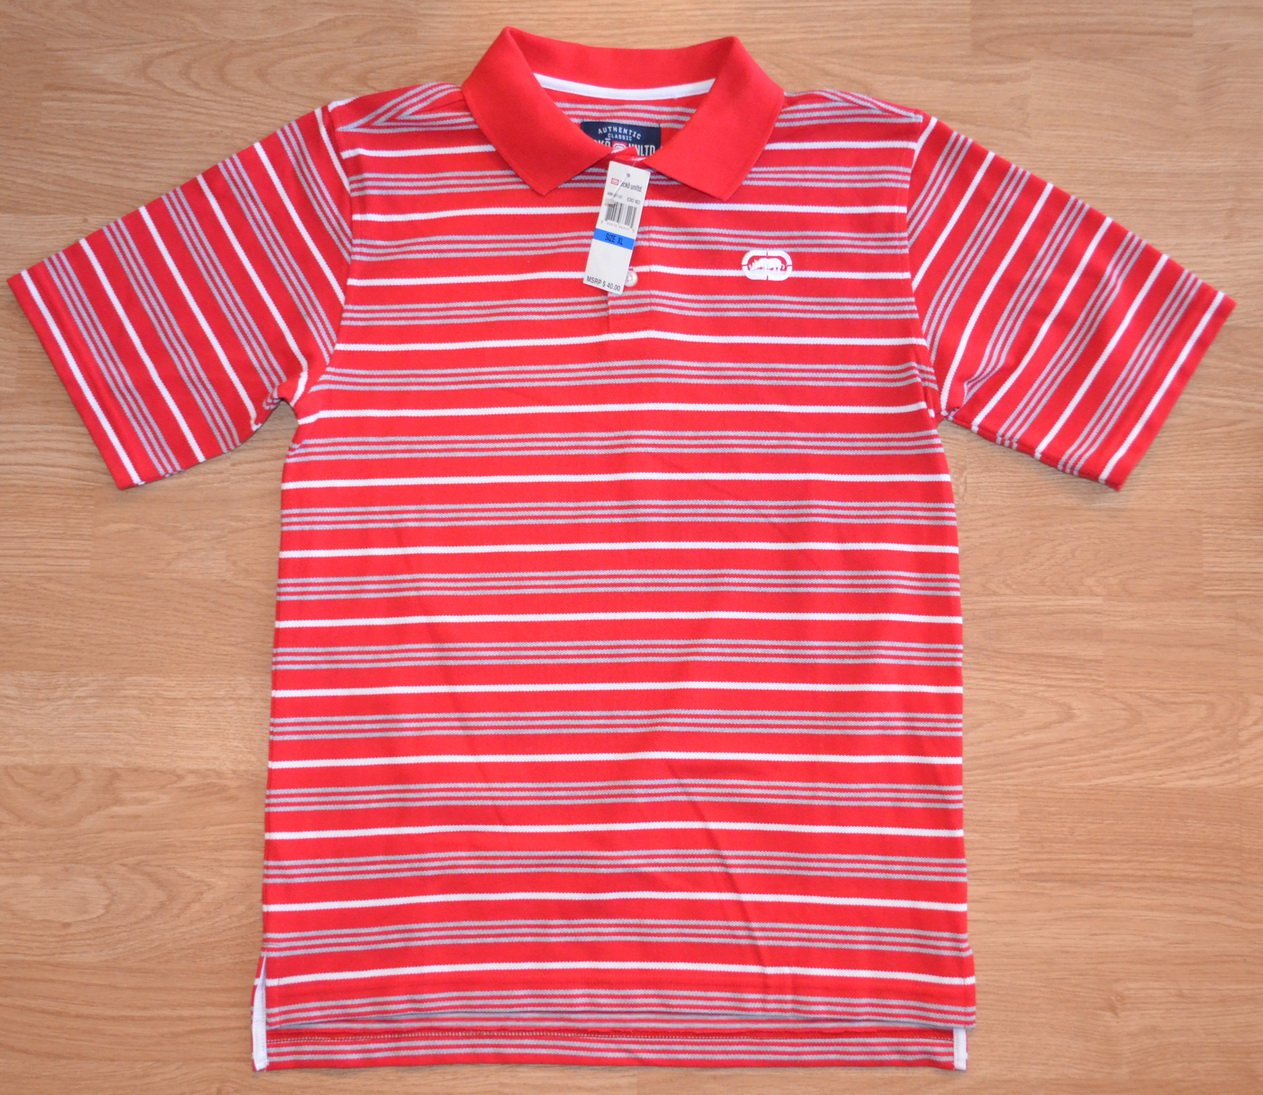 N988 New Boy's Polo shirt ECKO UNLTD Size XL MSRP $40.00